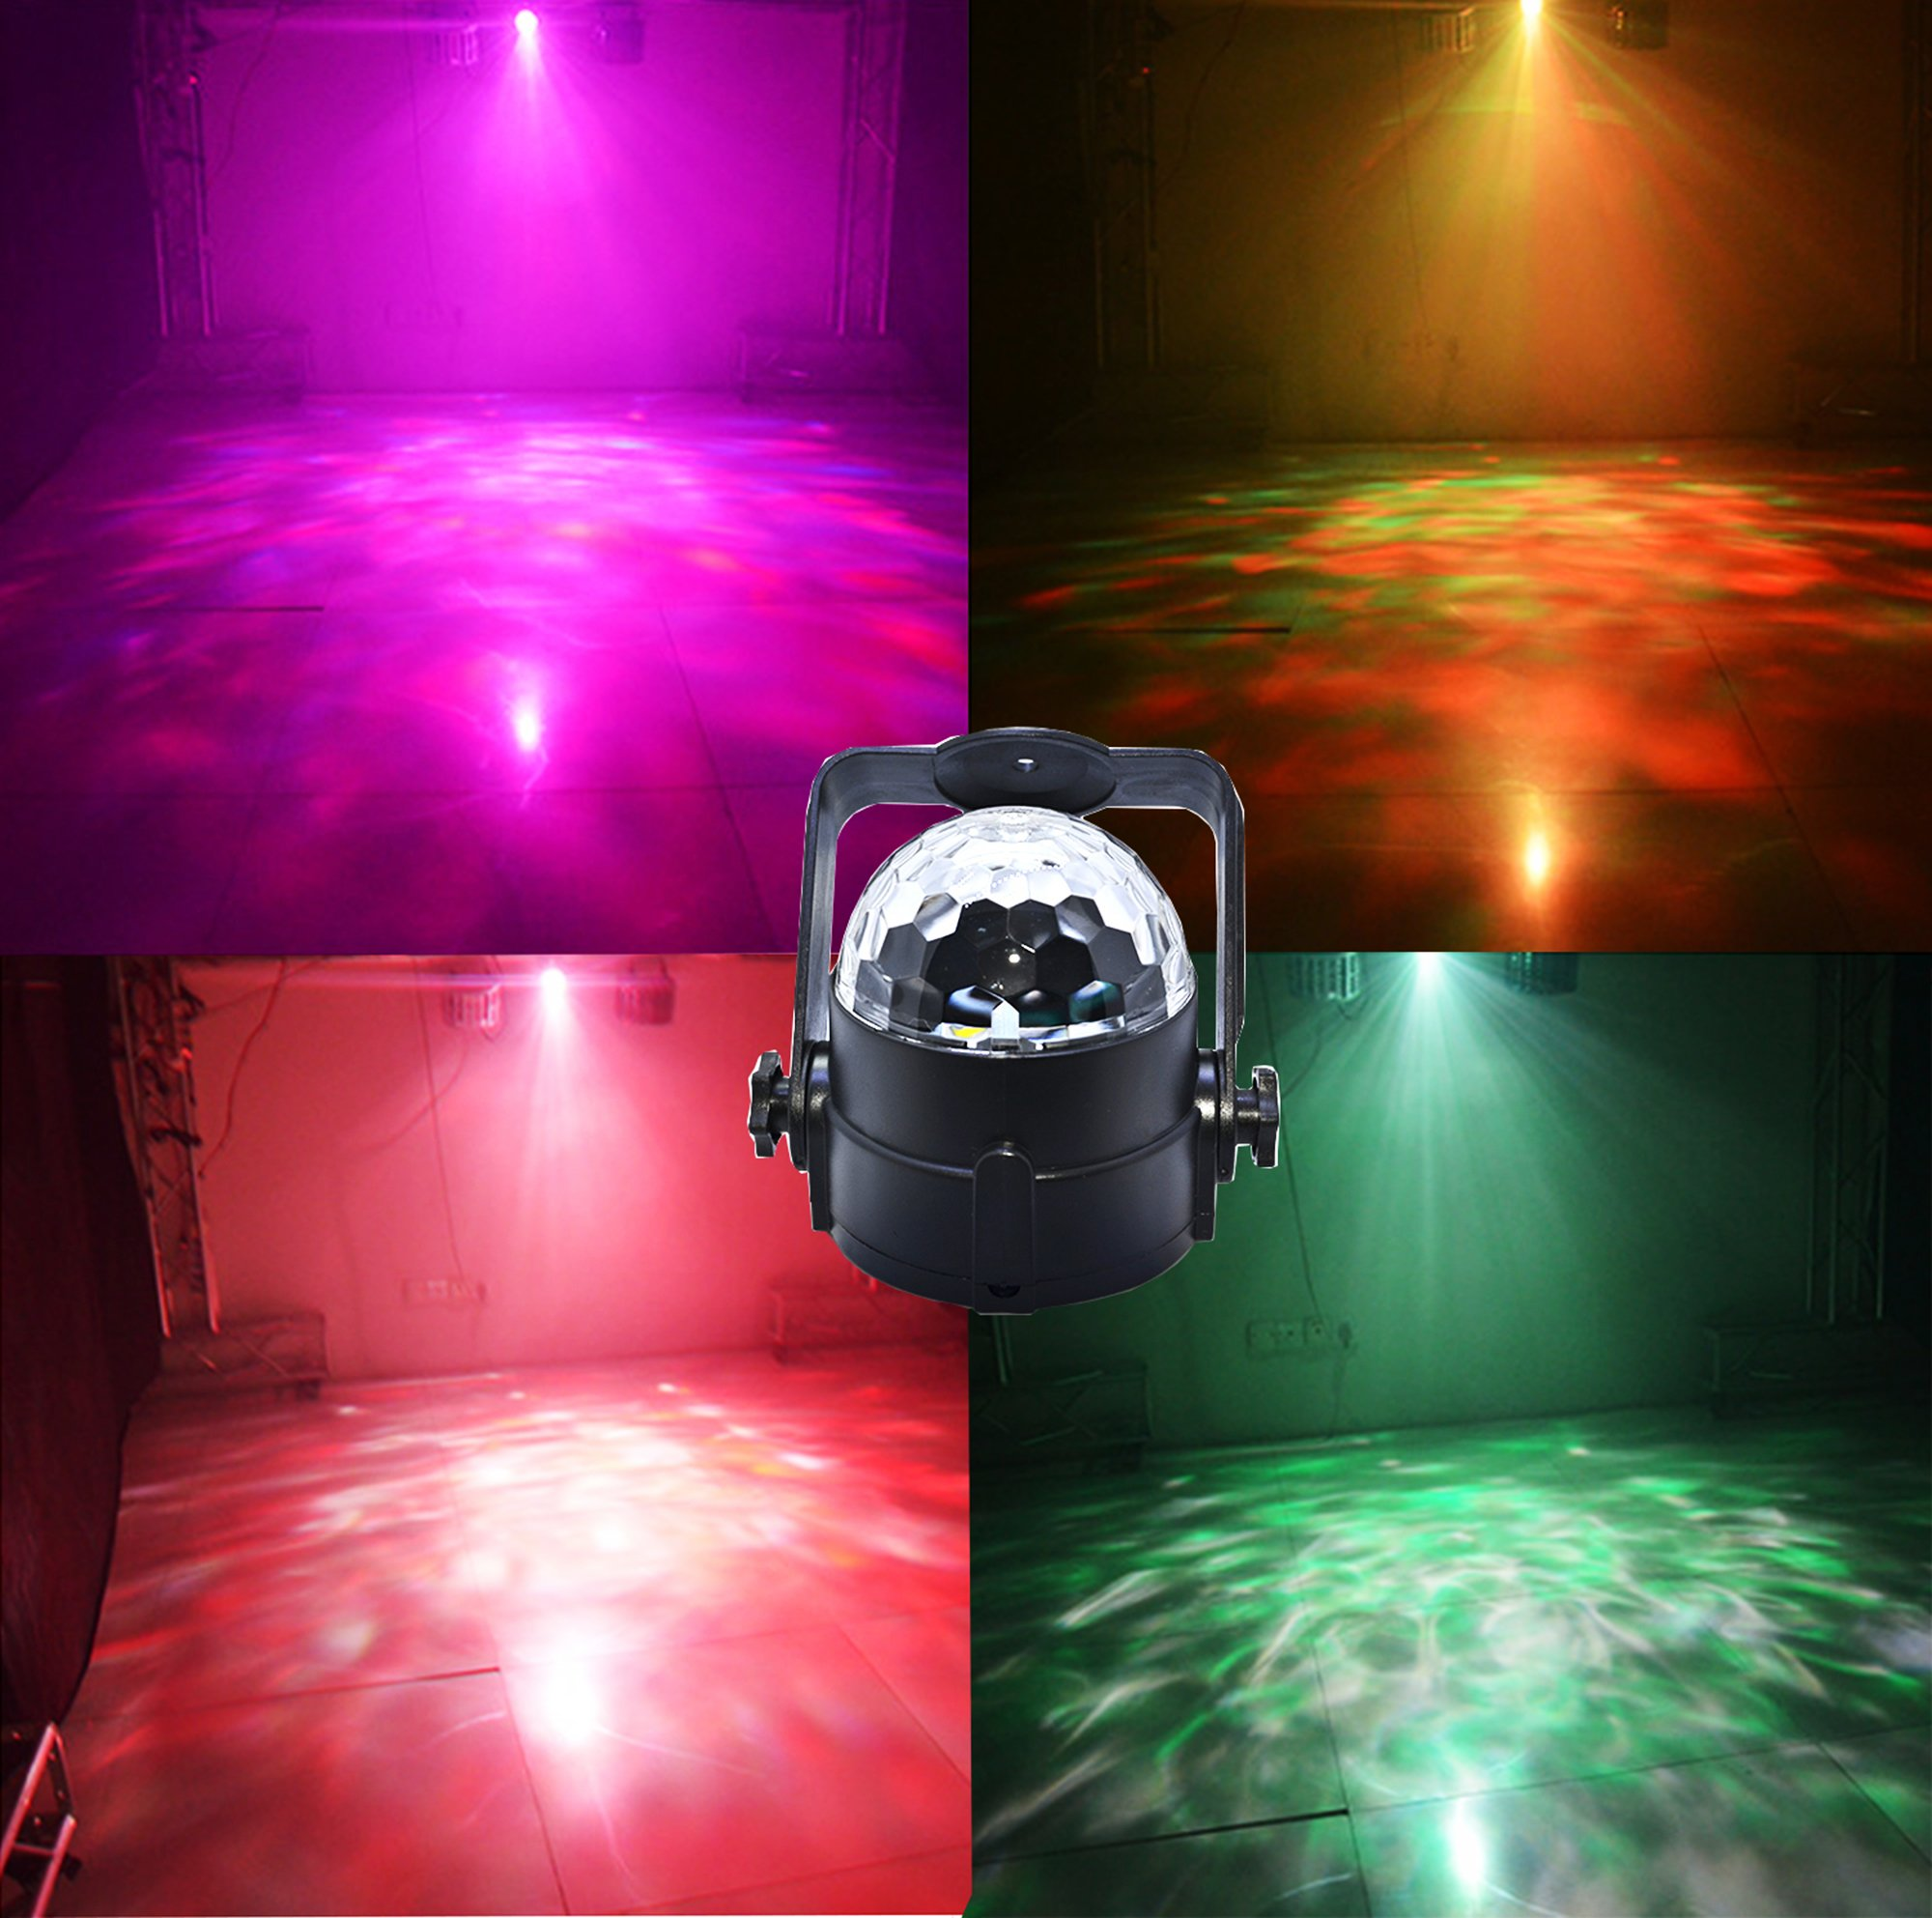 dj night meetings effects light offer lighting djs to american complimentary we remember special